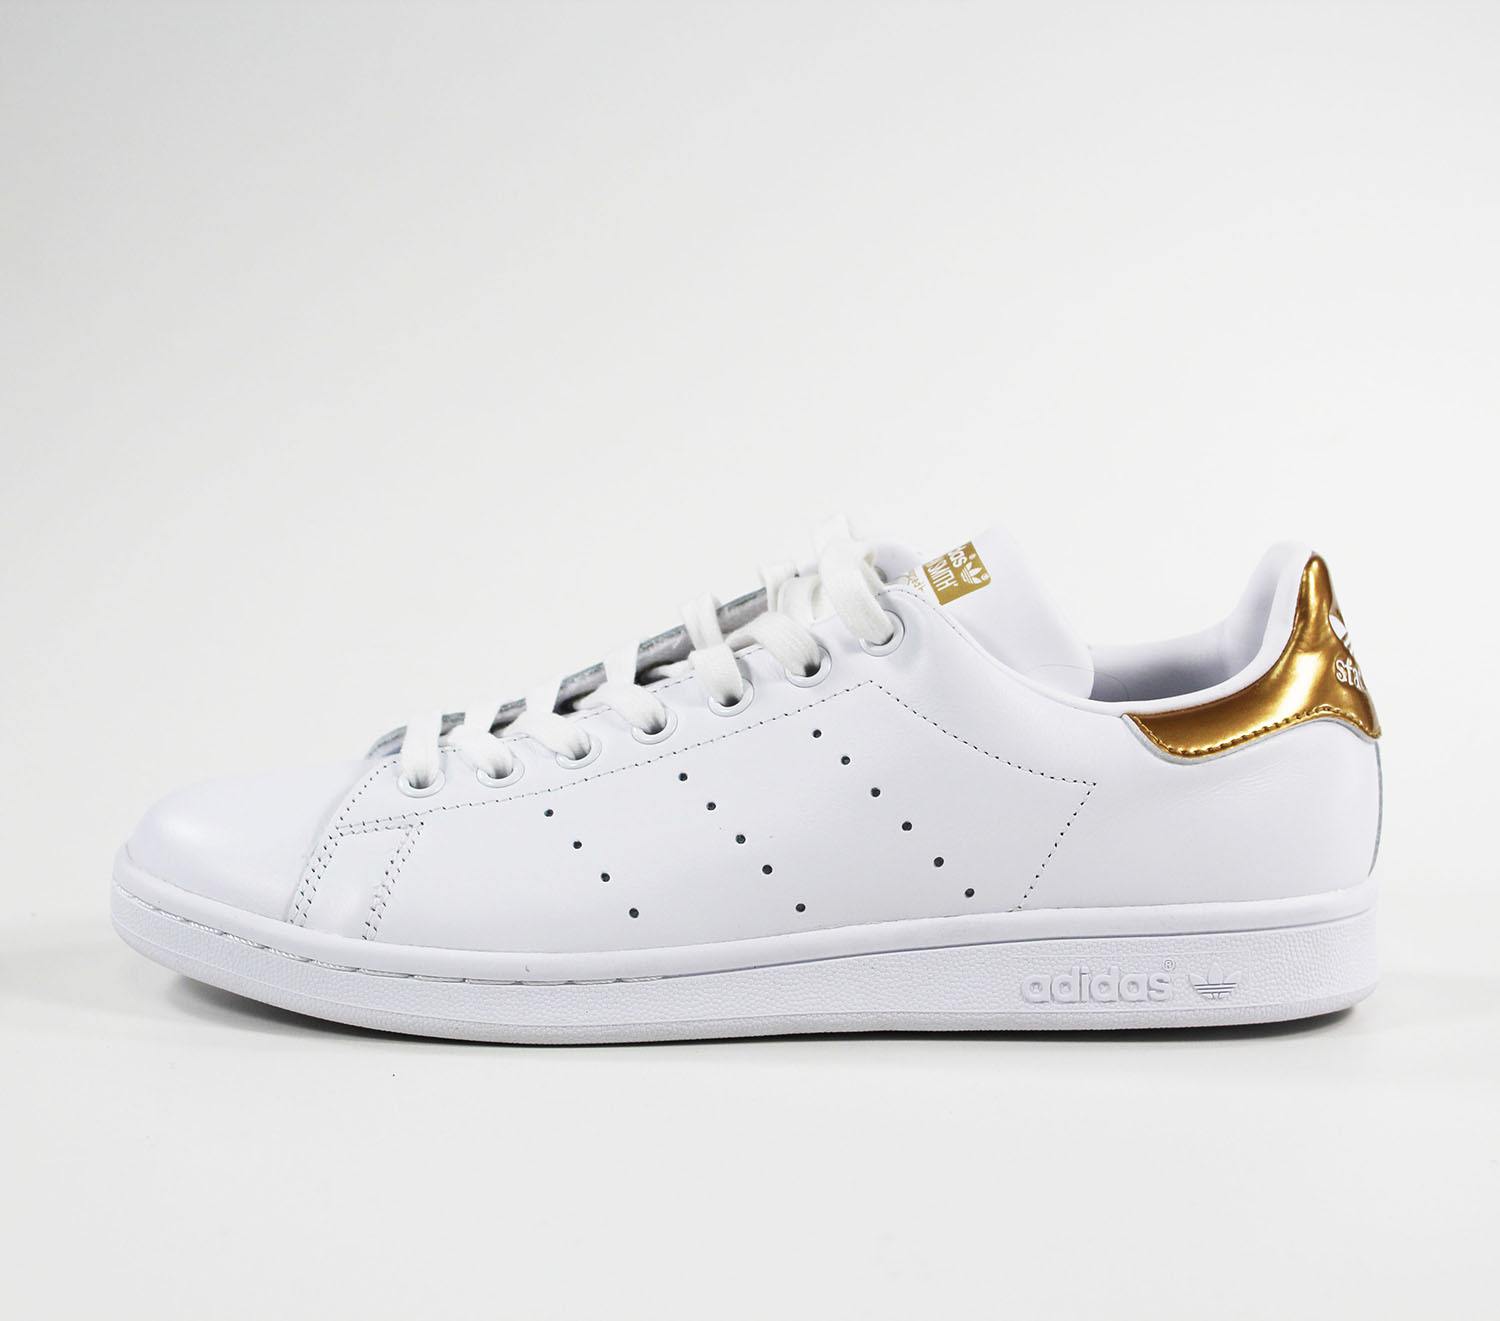 ADIDAS Stan Smith White Casual Sneakers